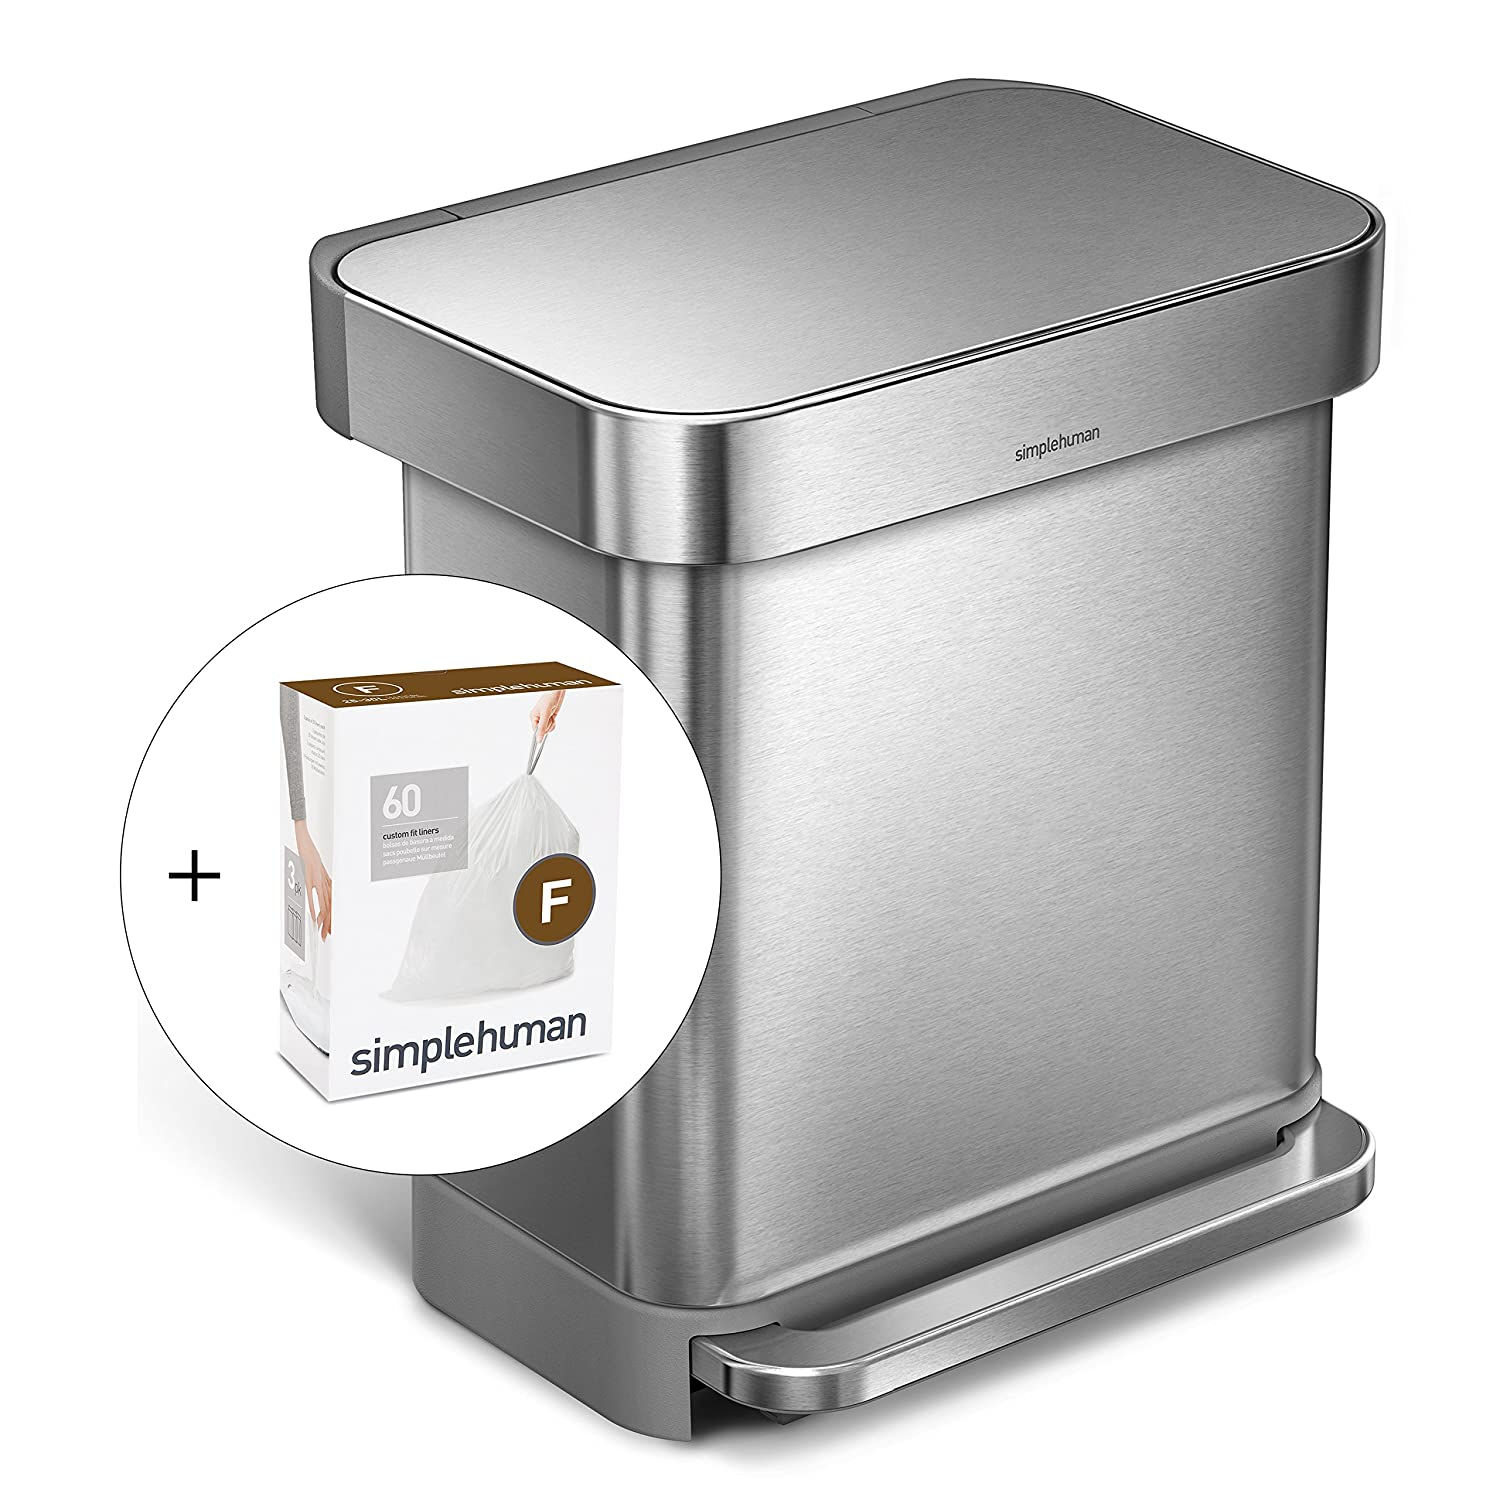 simplehuman 30L Rectangular Step Trash Can with Liner Pocket, Brushed Stainless Steel, with 60 pack custom fit liner code F CW2028 + CW0256